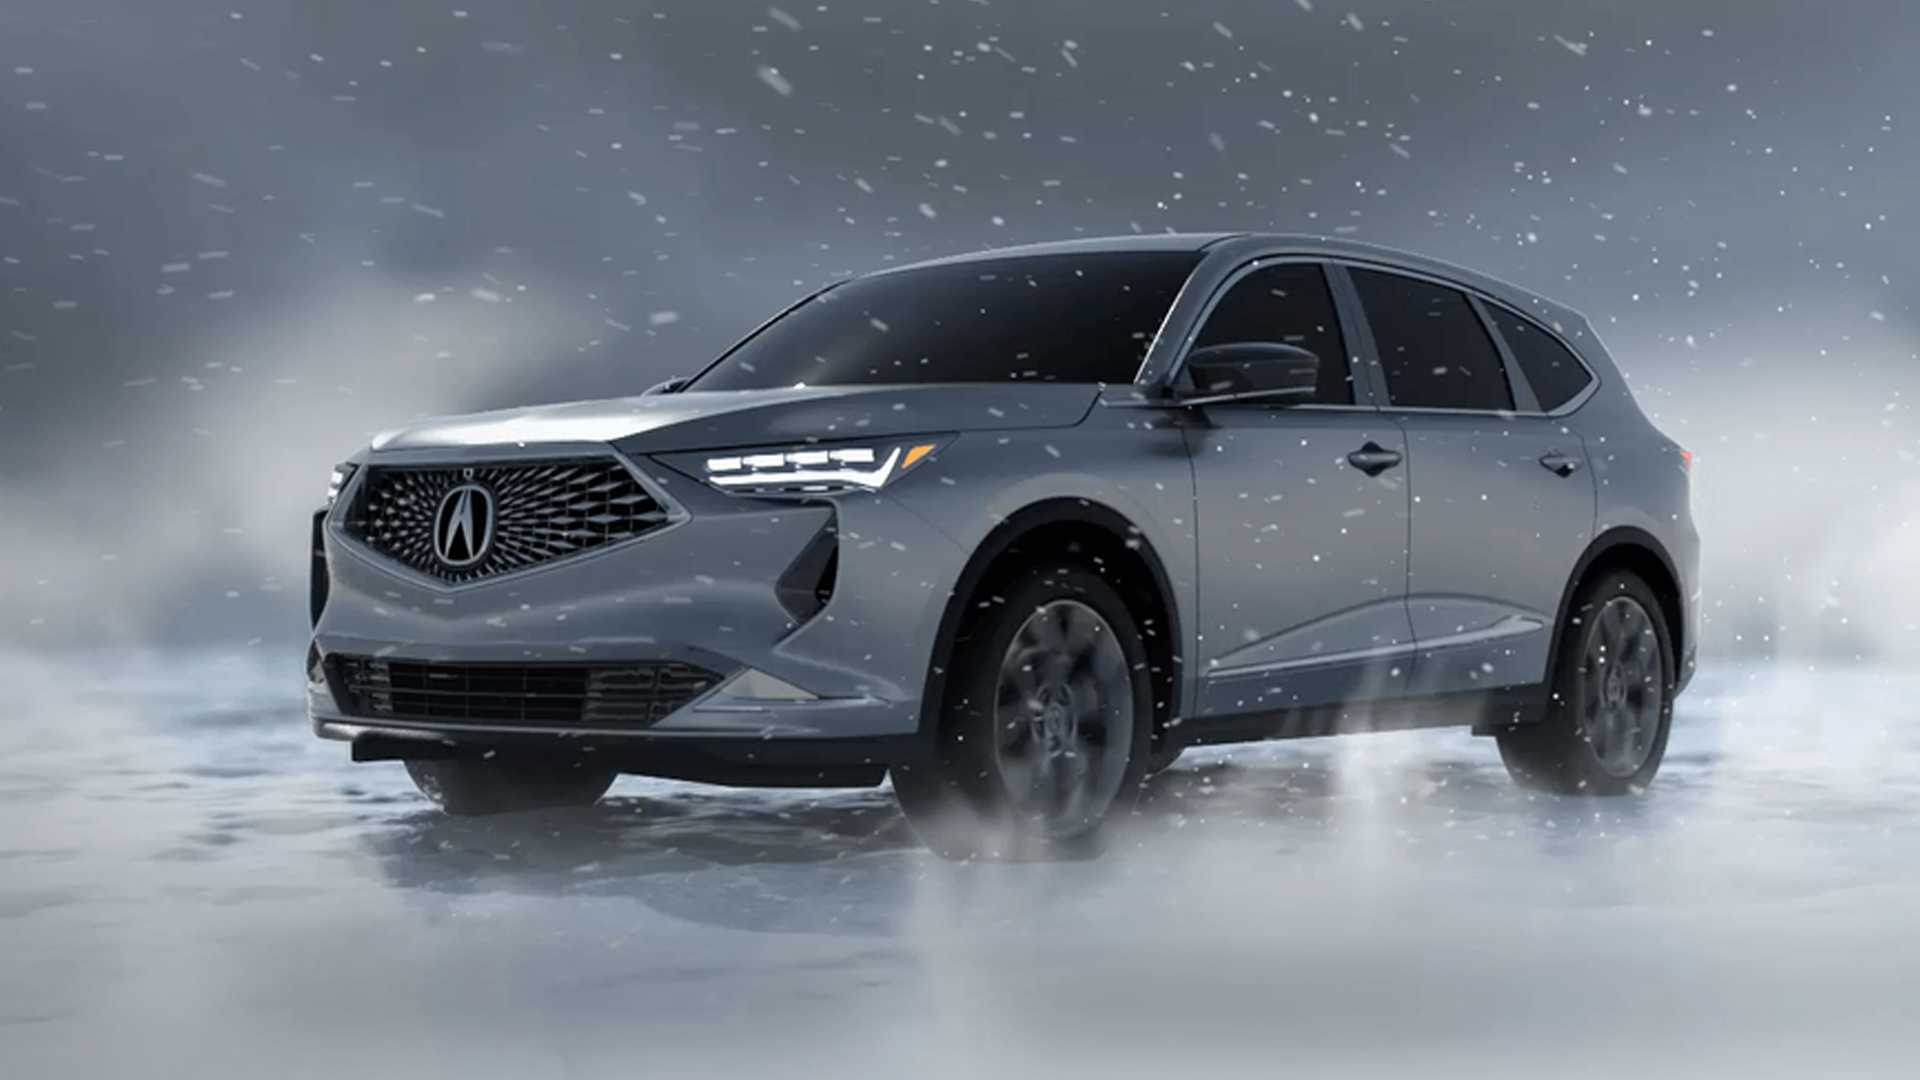 75 Best Review Acura Suv 2020 Photos for Acura Suv 2020